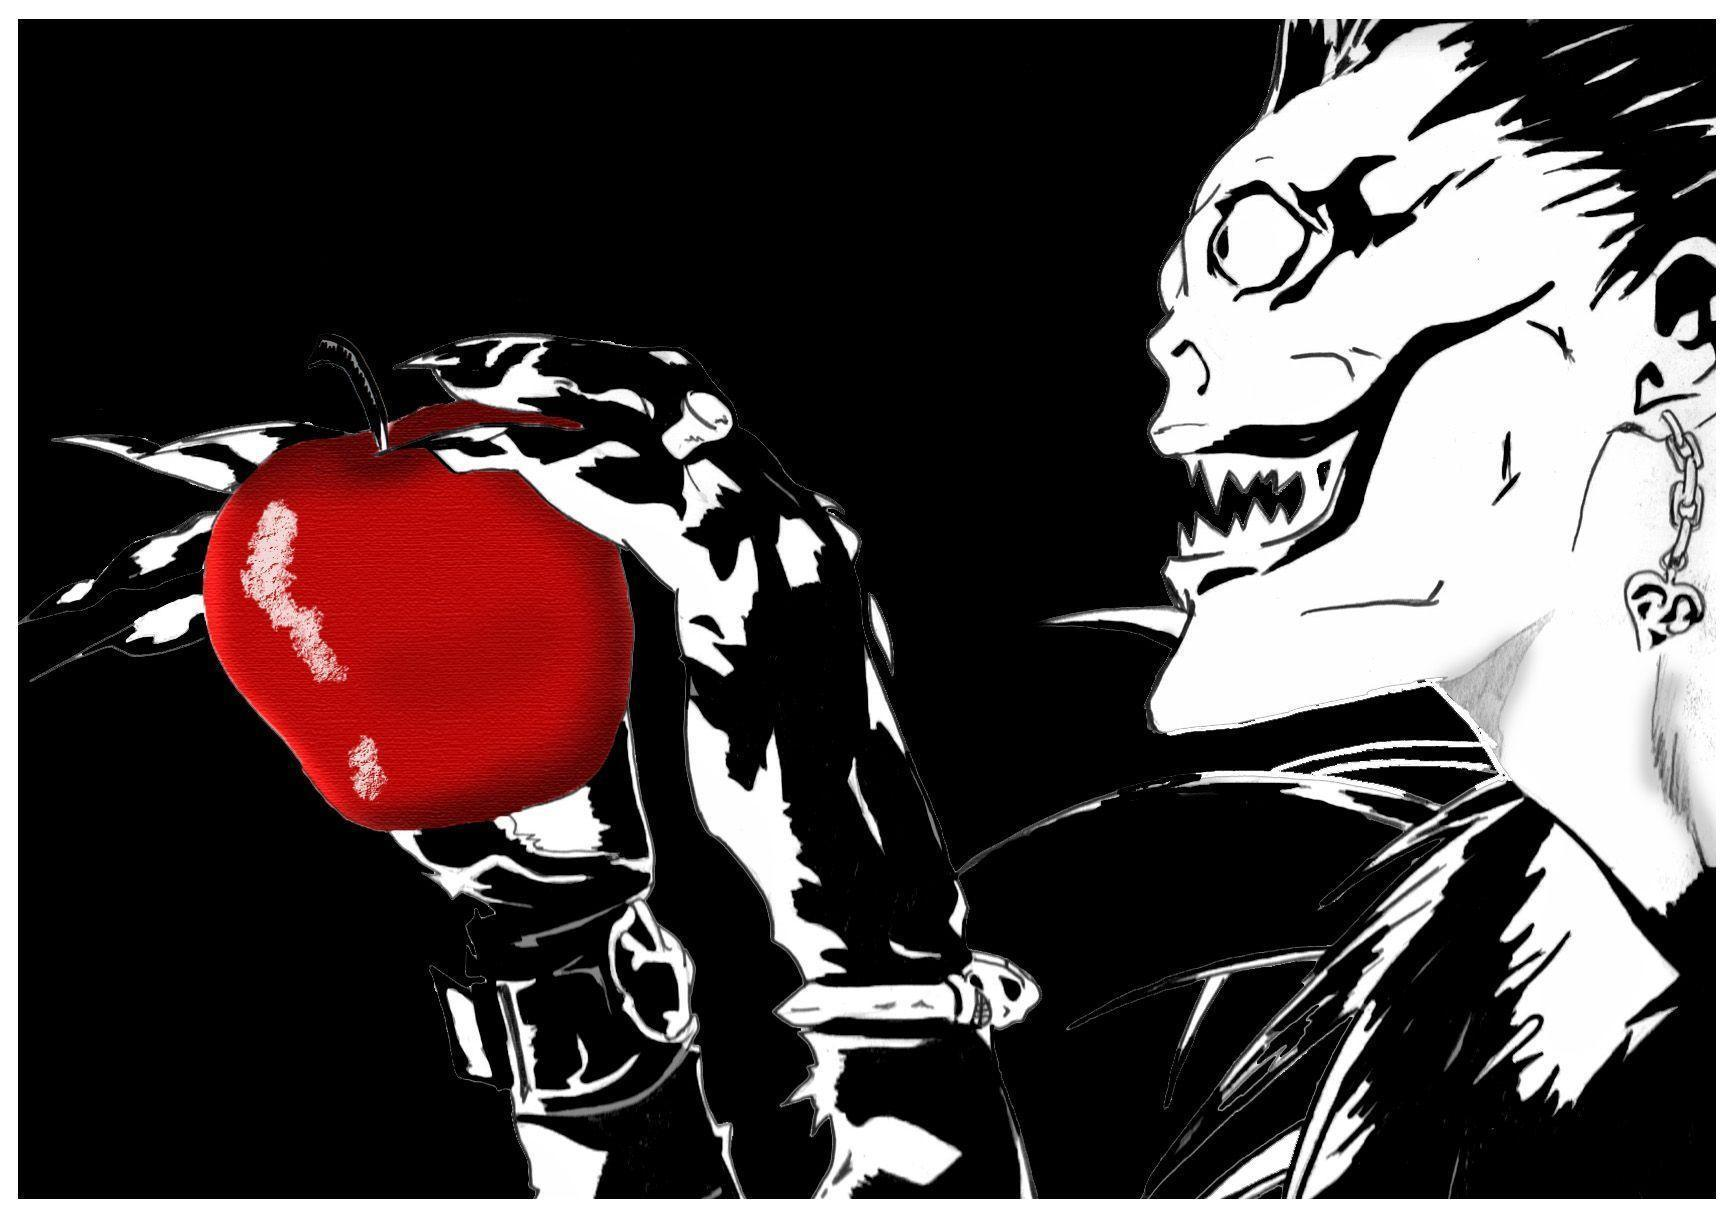 light and ryuk wallpaper - photo #20